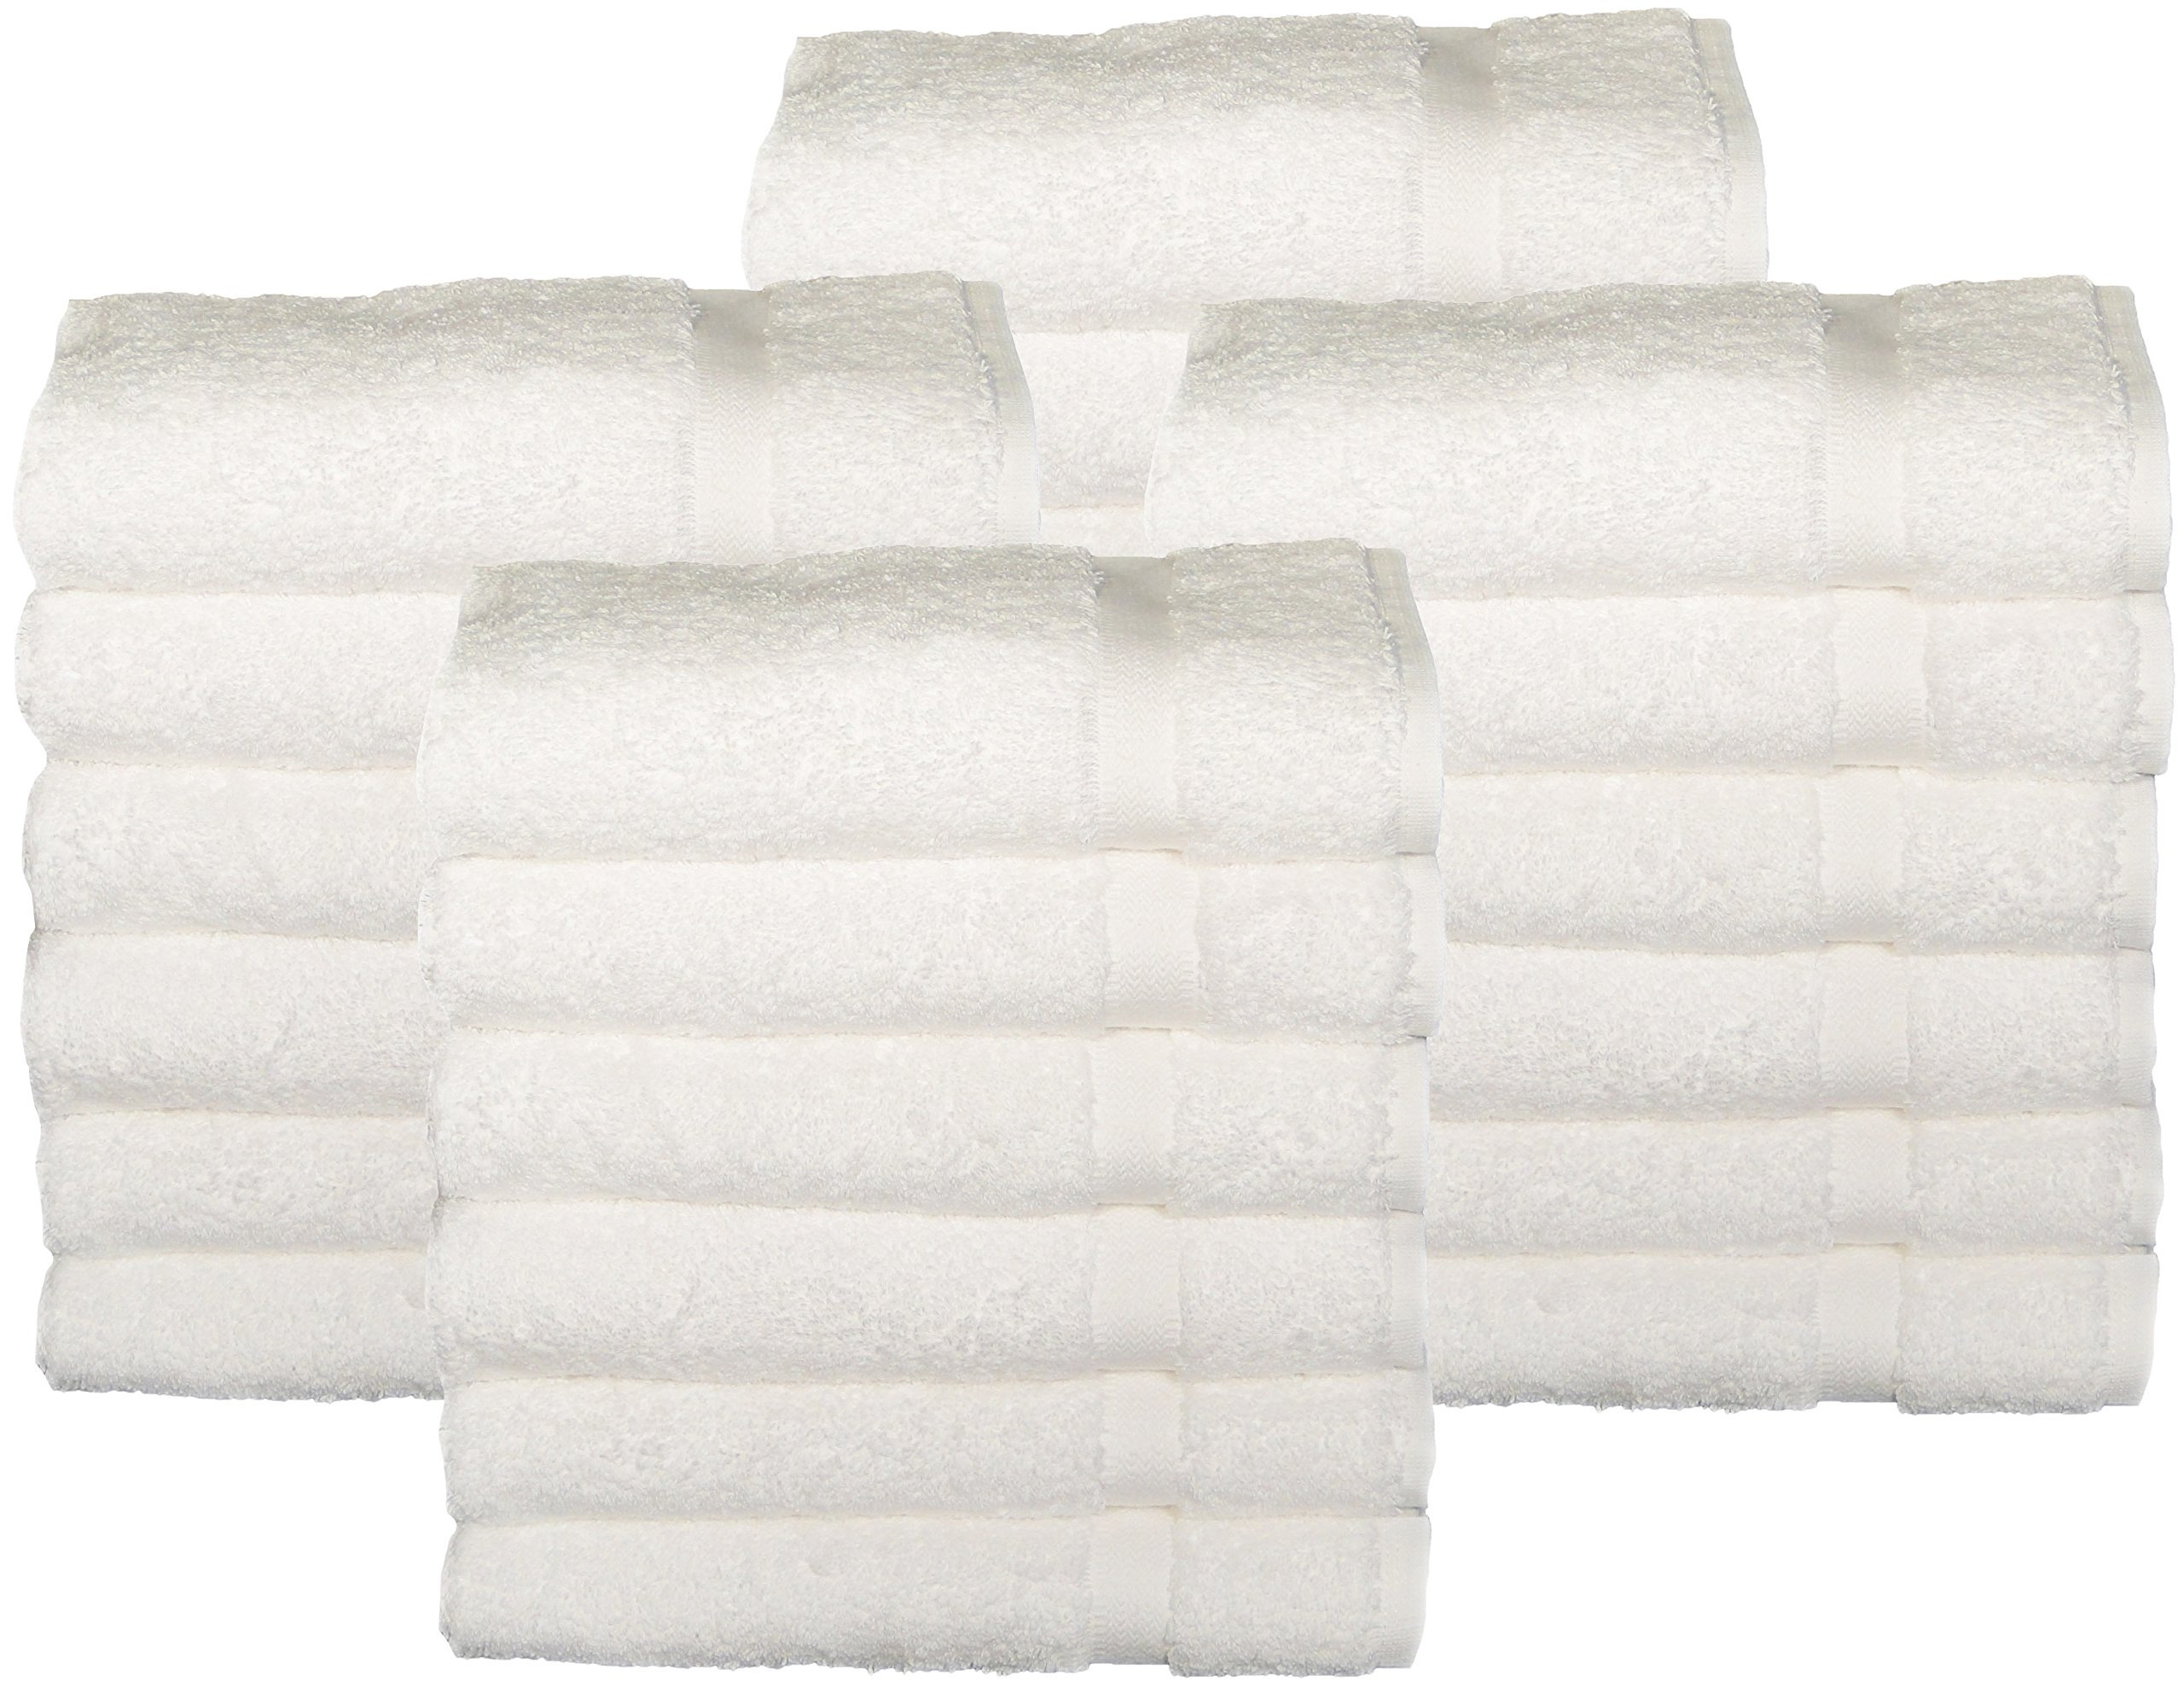 HomeLabels Cotton Salon Towels (24-Pack, White,16x26 inches) - Gym Hand Face Towel